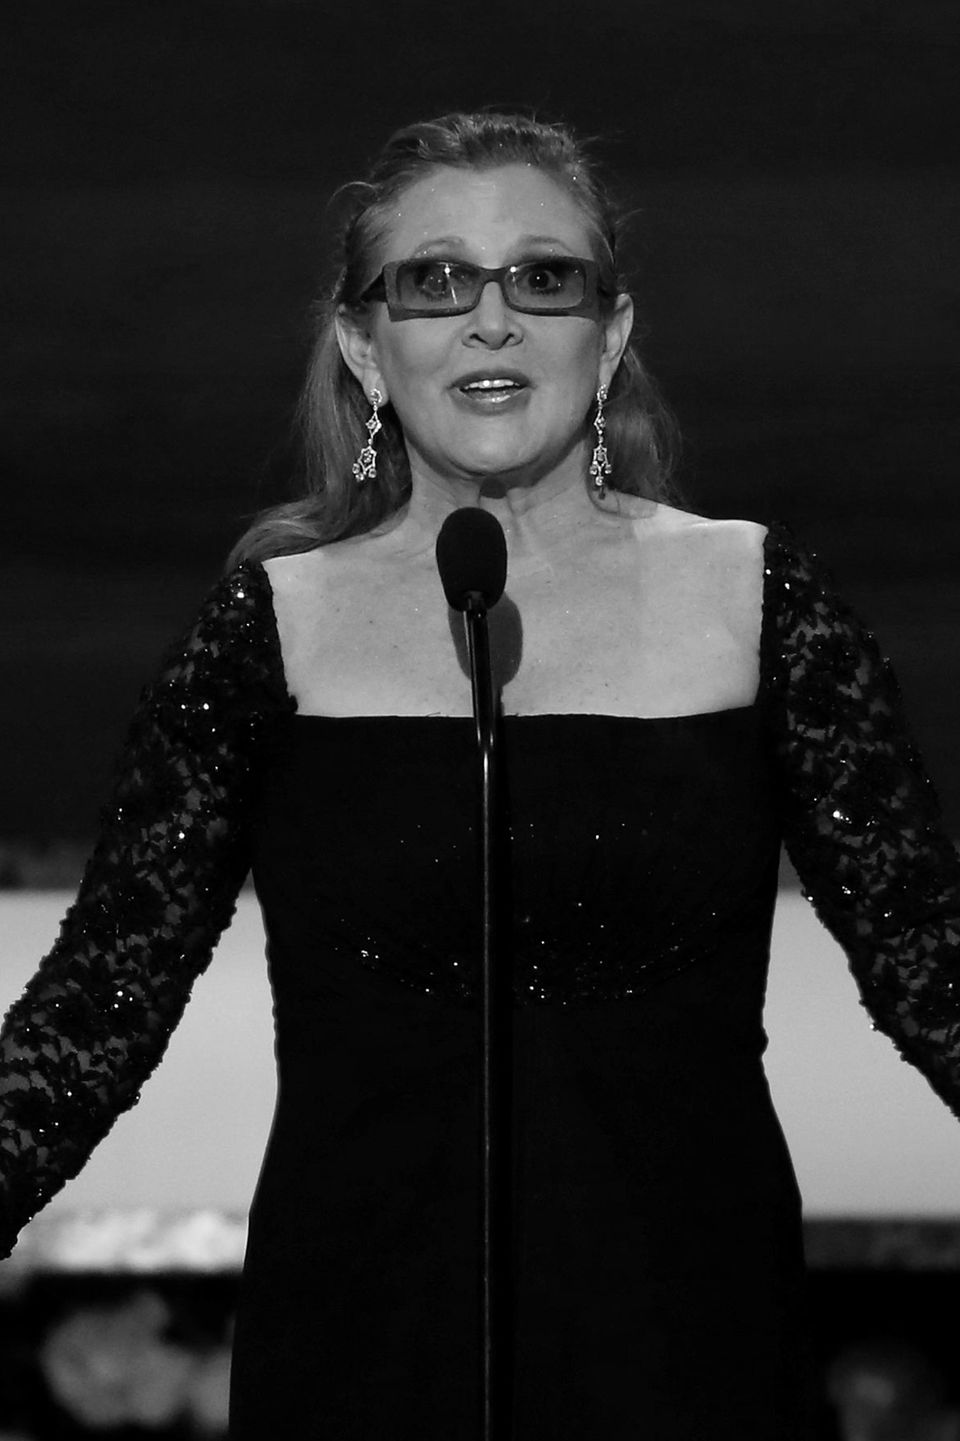 Carrie Fisher (†)